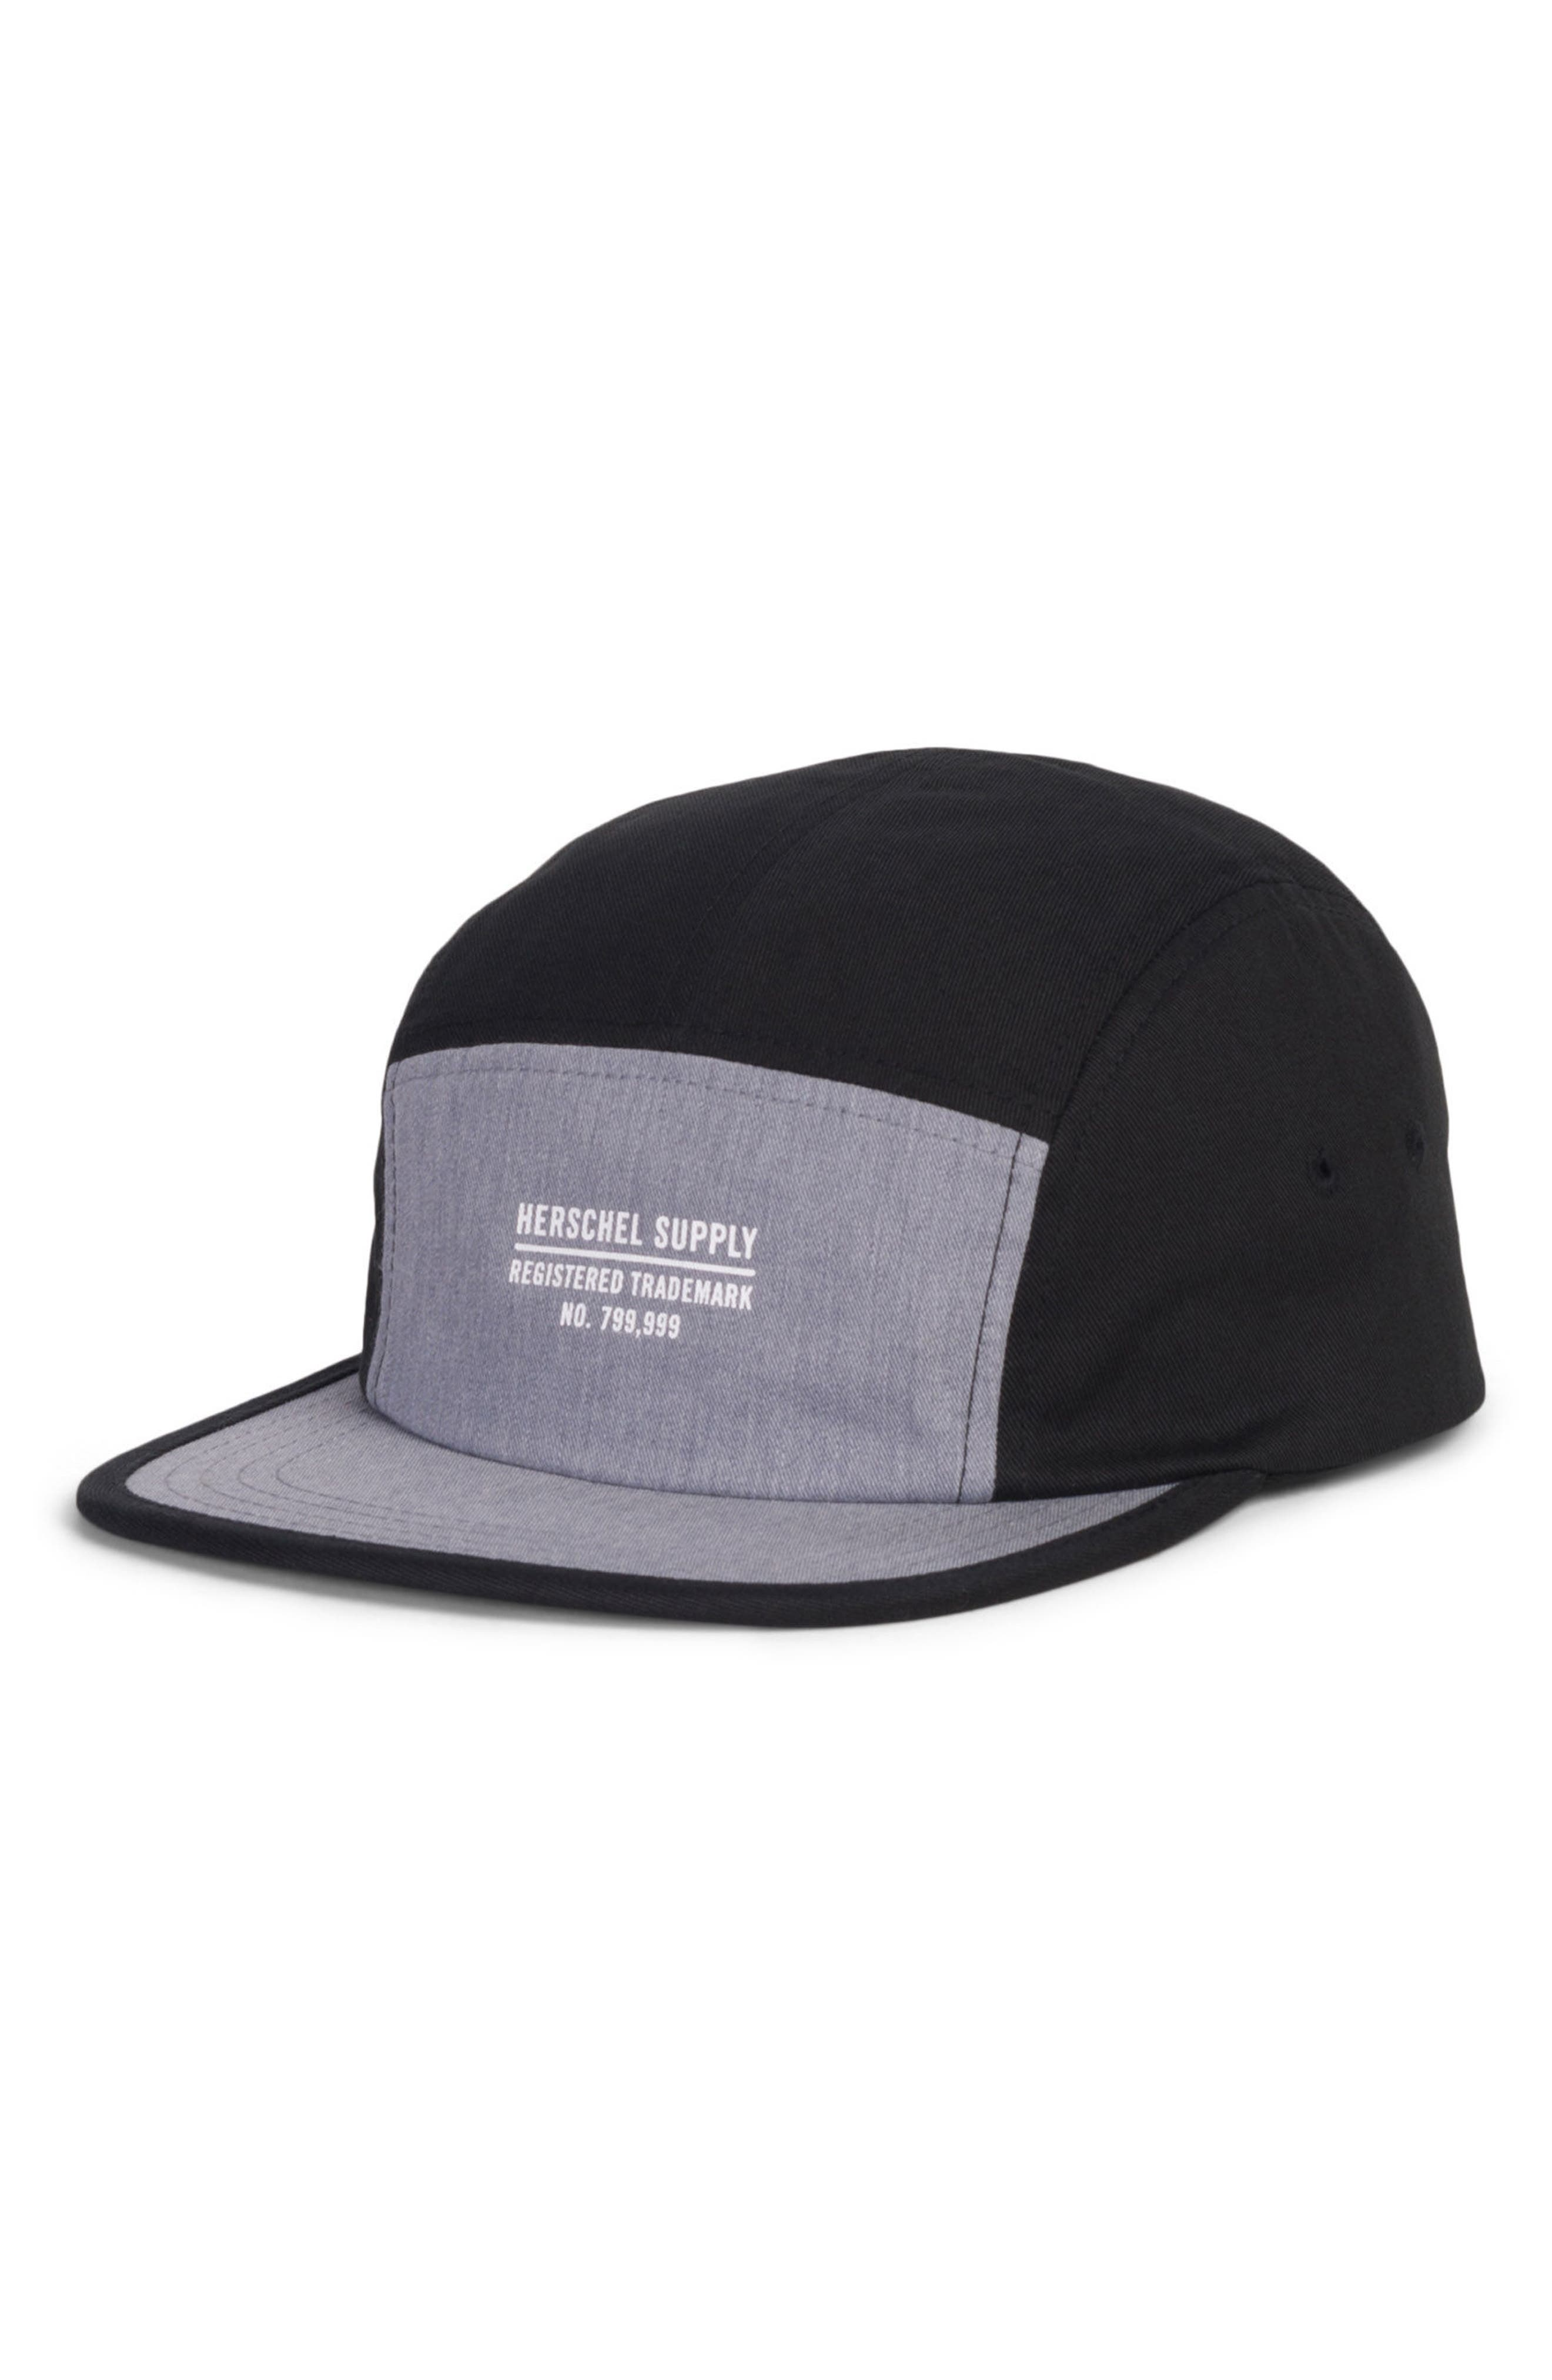 Glendale Colorblocked Cap,                         Main,                         color, Black/ Heather Grey